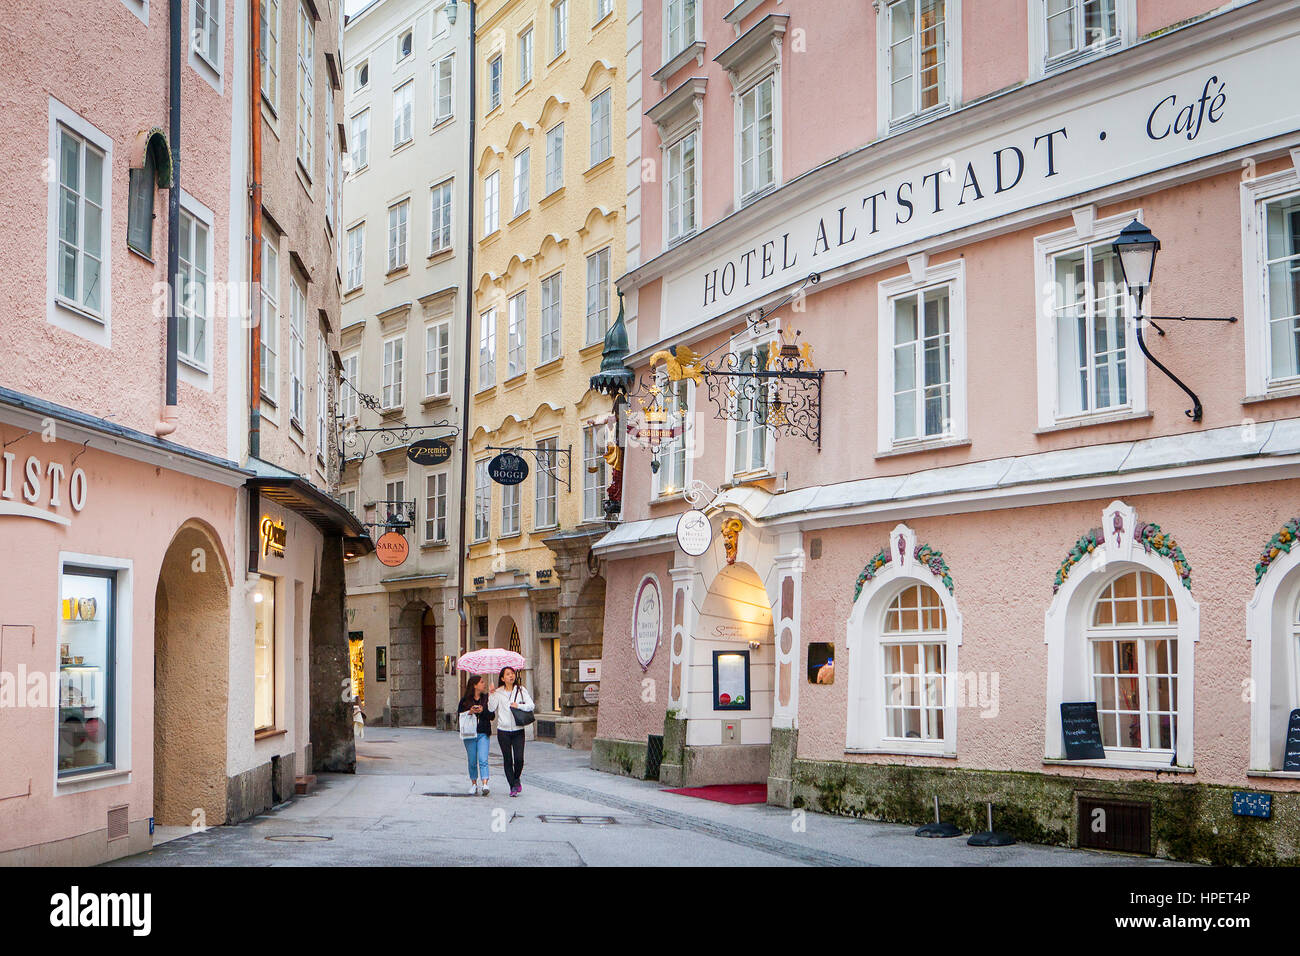 judengasse salzburg austria stock photos judengasse salzburg austria stock images alamy. Black Bedroom Furniture Sets. Home Design Ideas